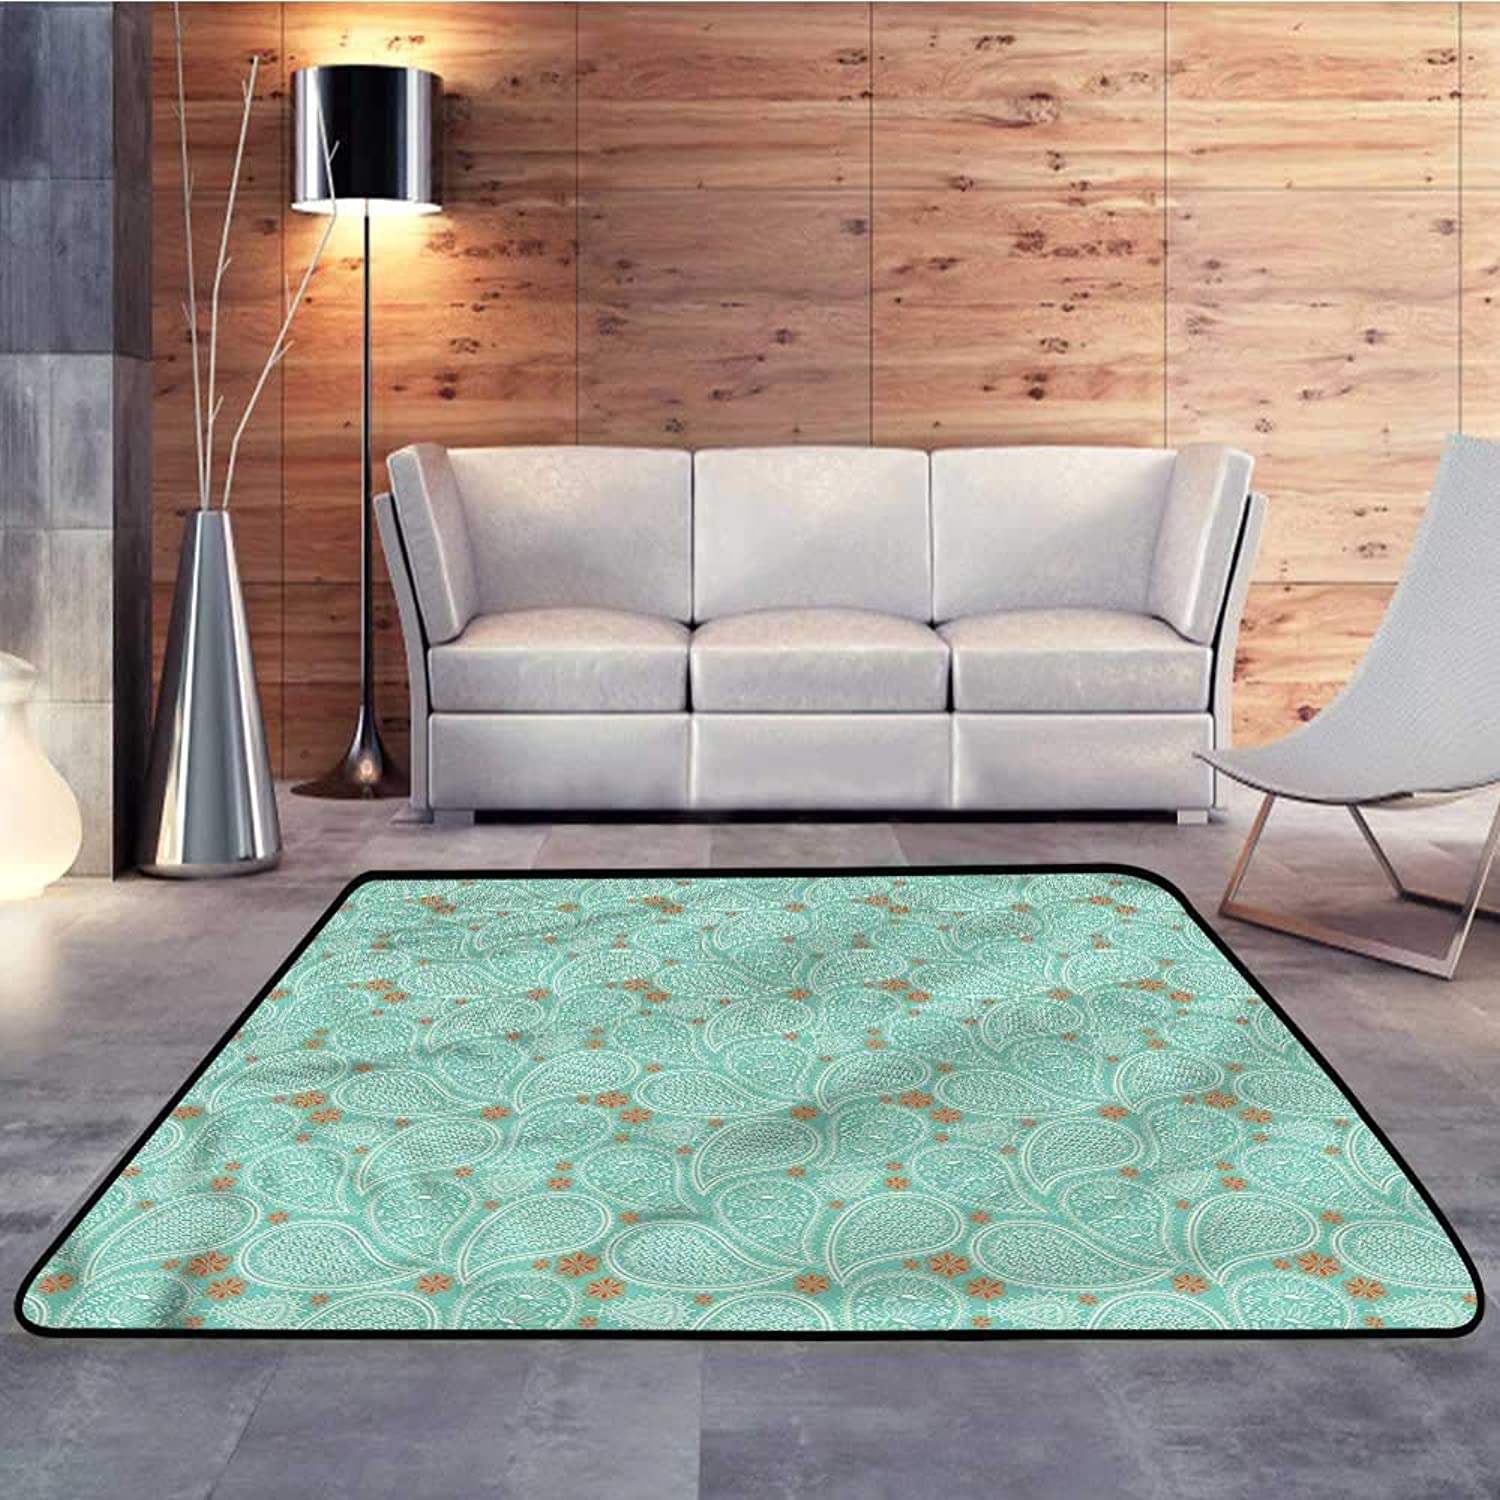 Carpet mat,Ethnic,bluee Paisley FlowersW 47  x L59 Floor Mat Entrance Doormat